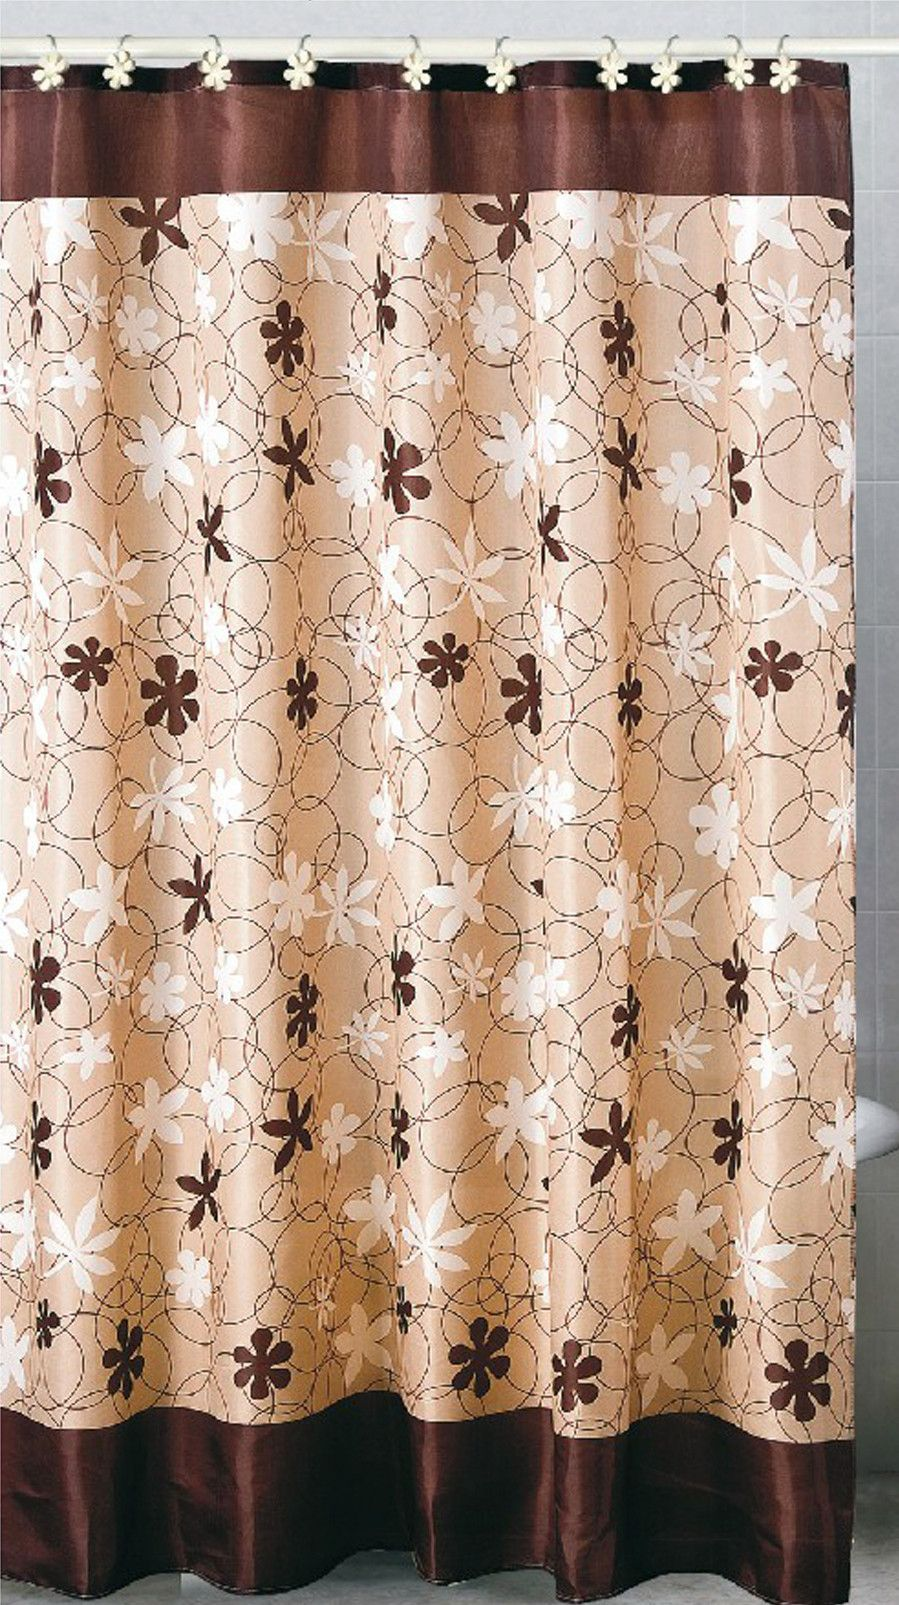 Cottage Shower Curtain Karen Single Shower Curtain Products Fabric Shower Curtains